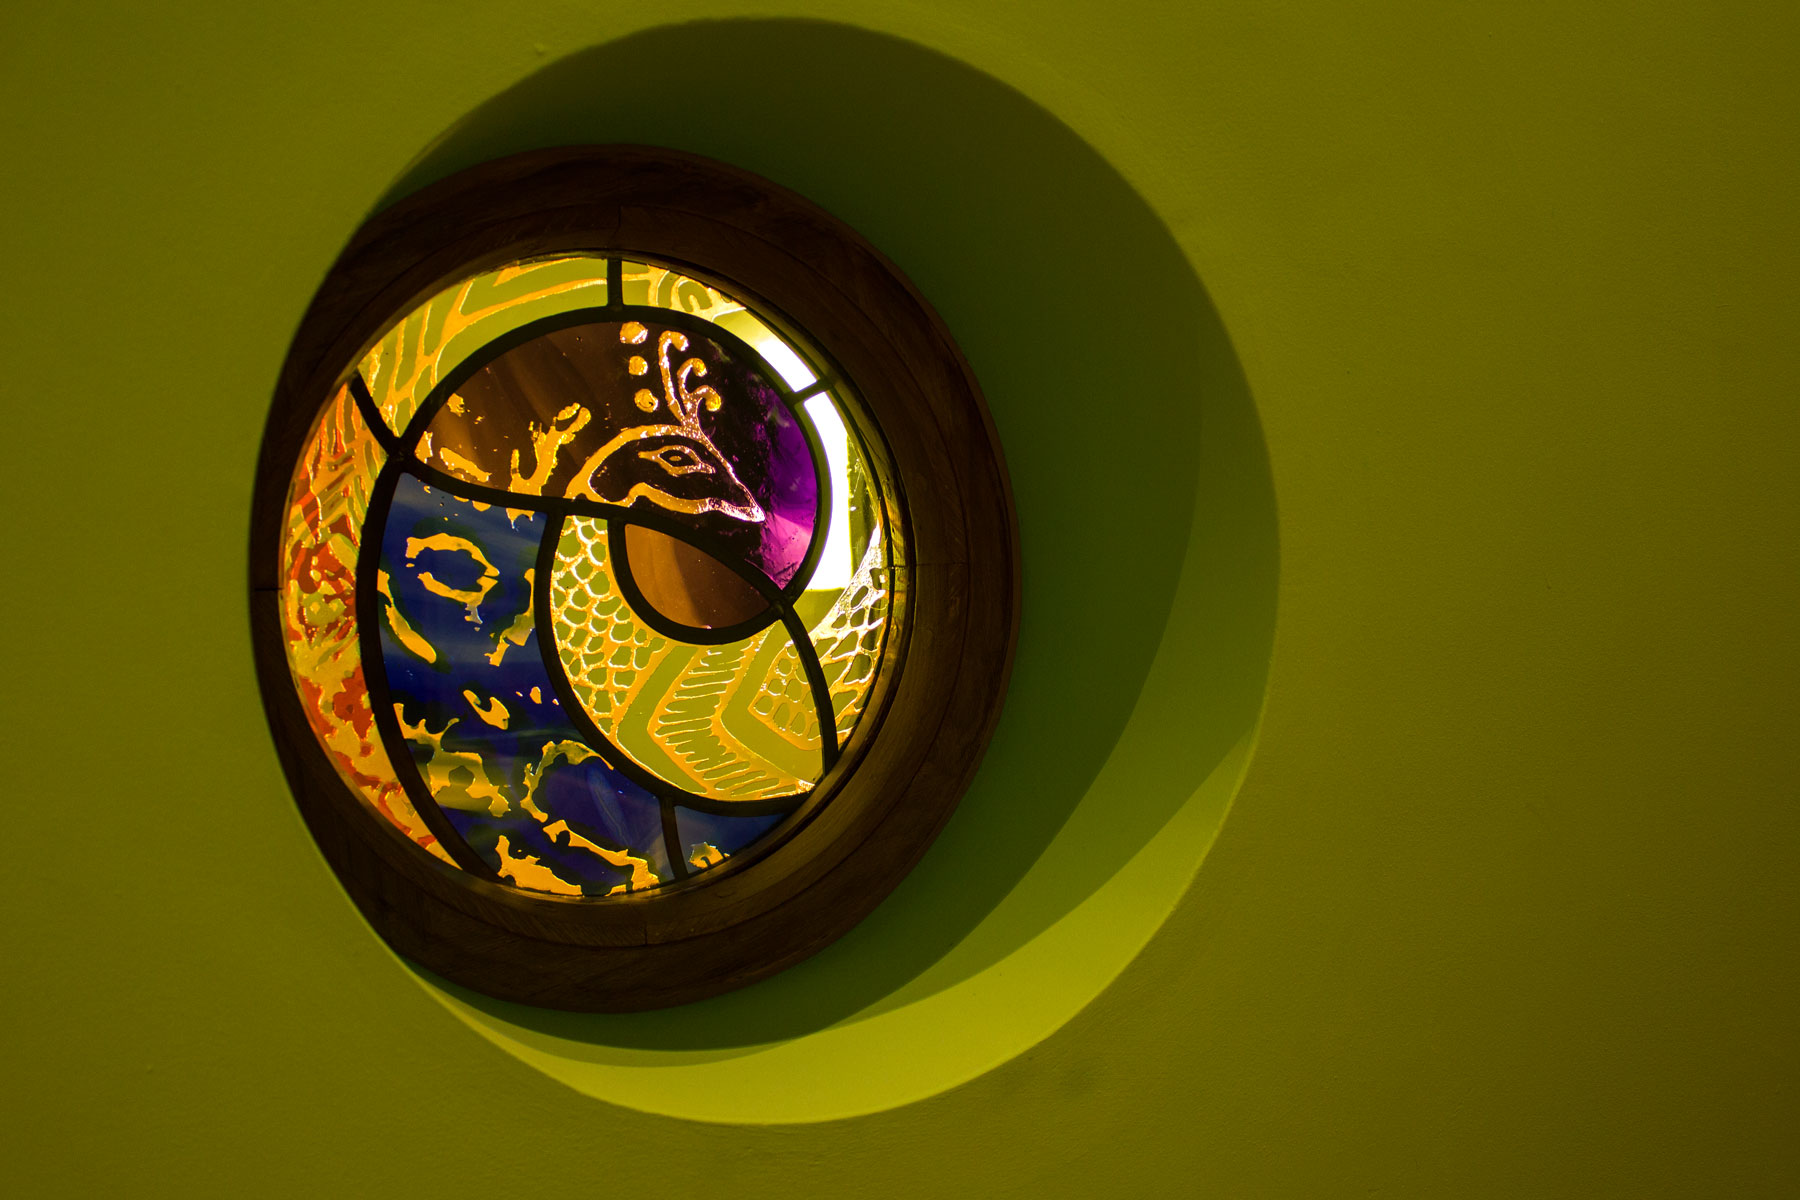 Swansea based stained glass artist Catrin Jones made a pair of beautiful peacock windows for the new hospice.